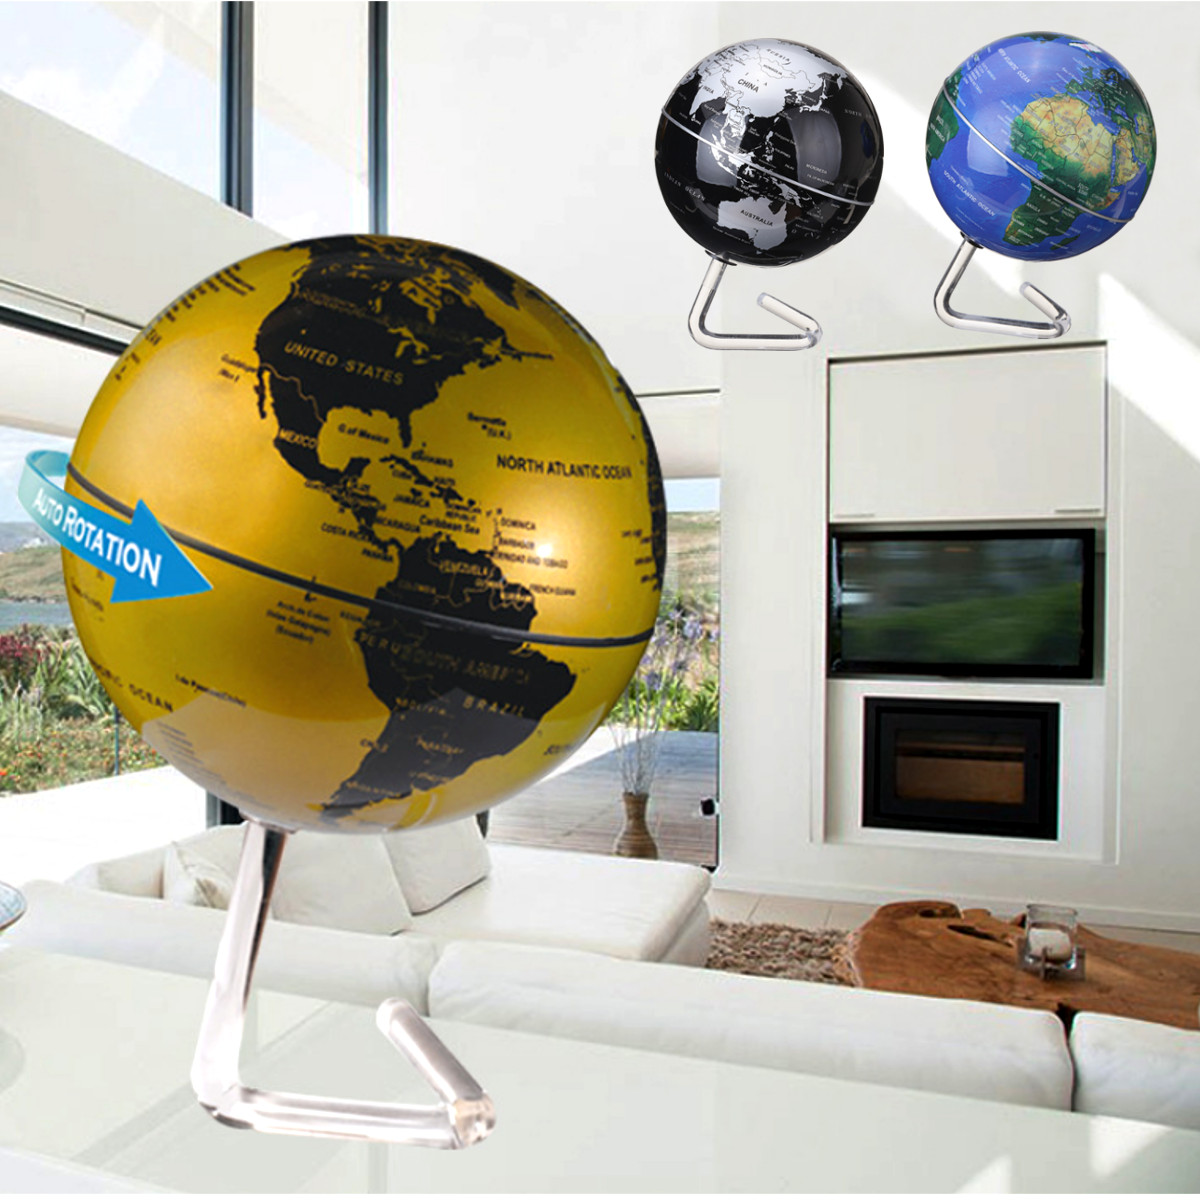 4'' 360° Dia Automatic Rotating Globe Battery Powered World Map Desktop Political Globe With Stand Education Tool Home Room Office Decor Kid Christmas Birthday Gift